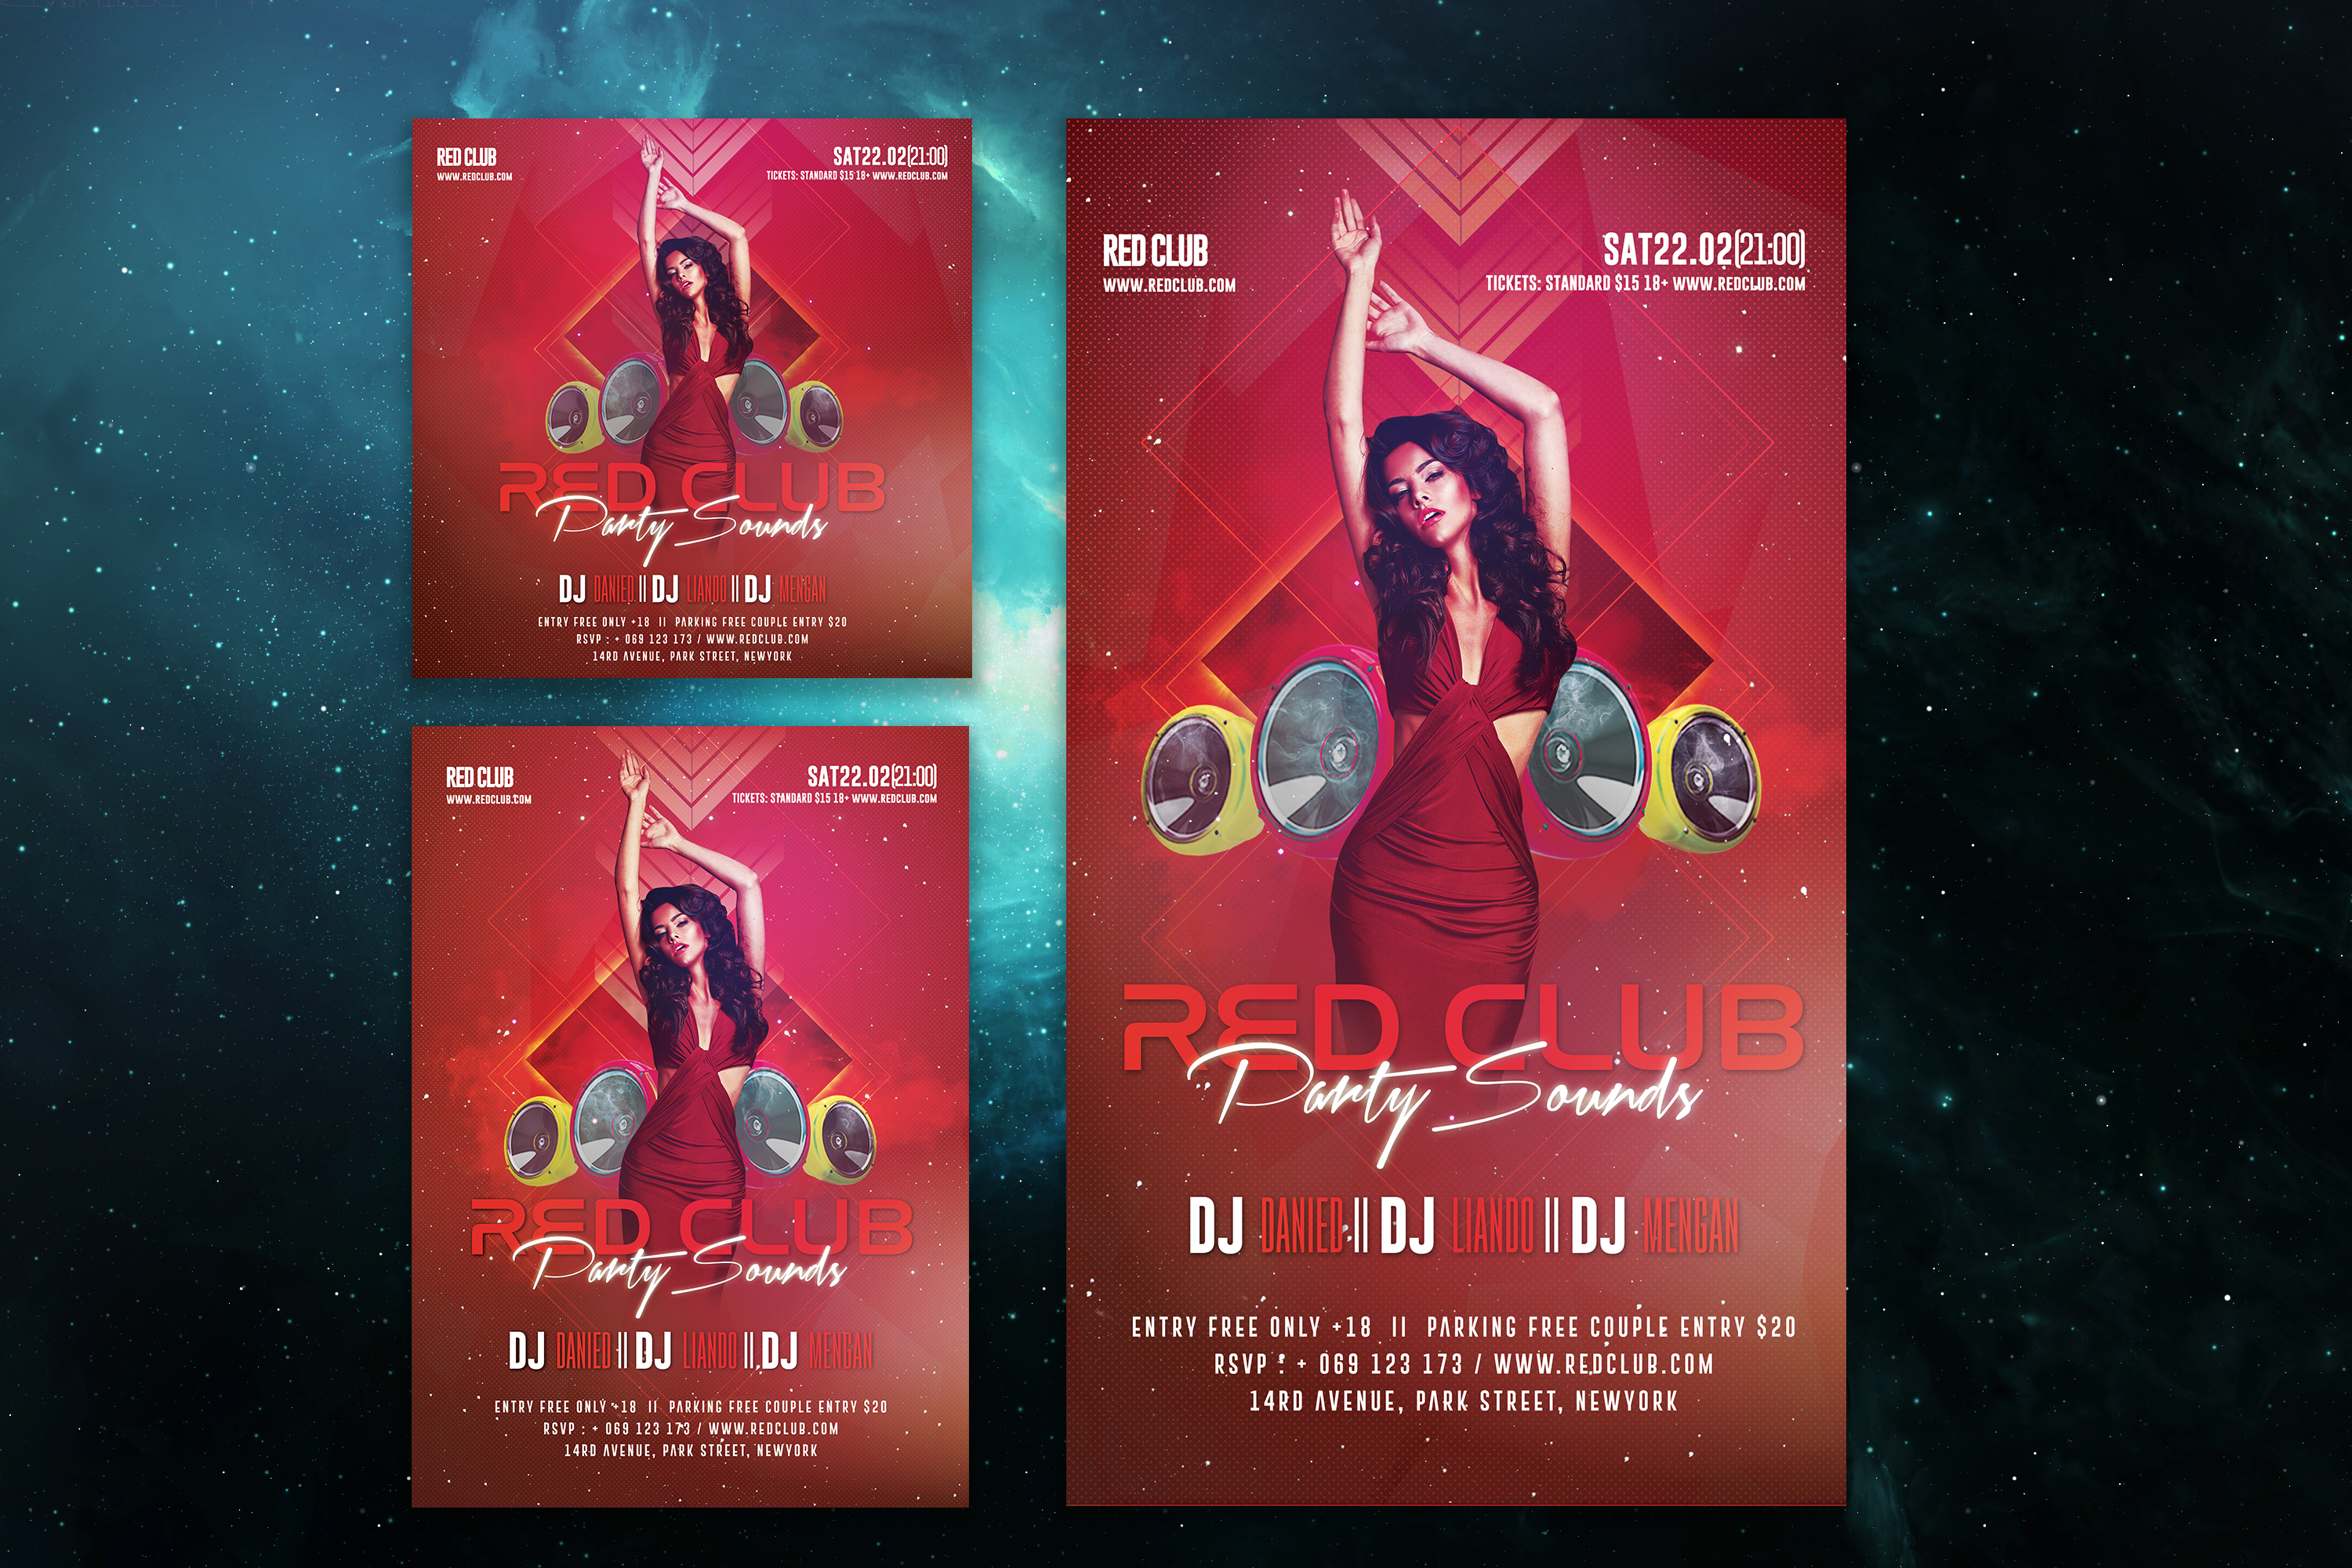 Red Club Party Sounds Flyer Template example image 3